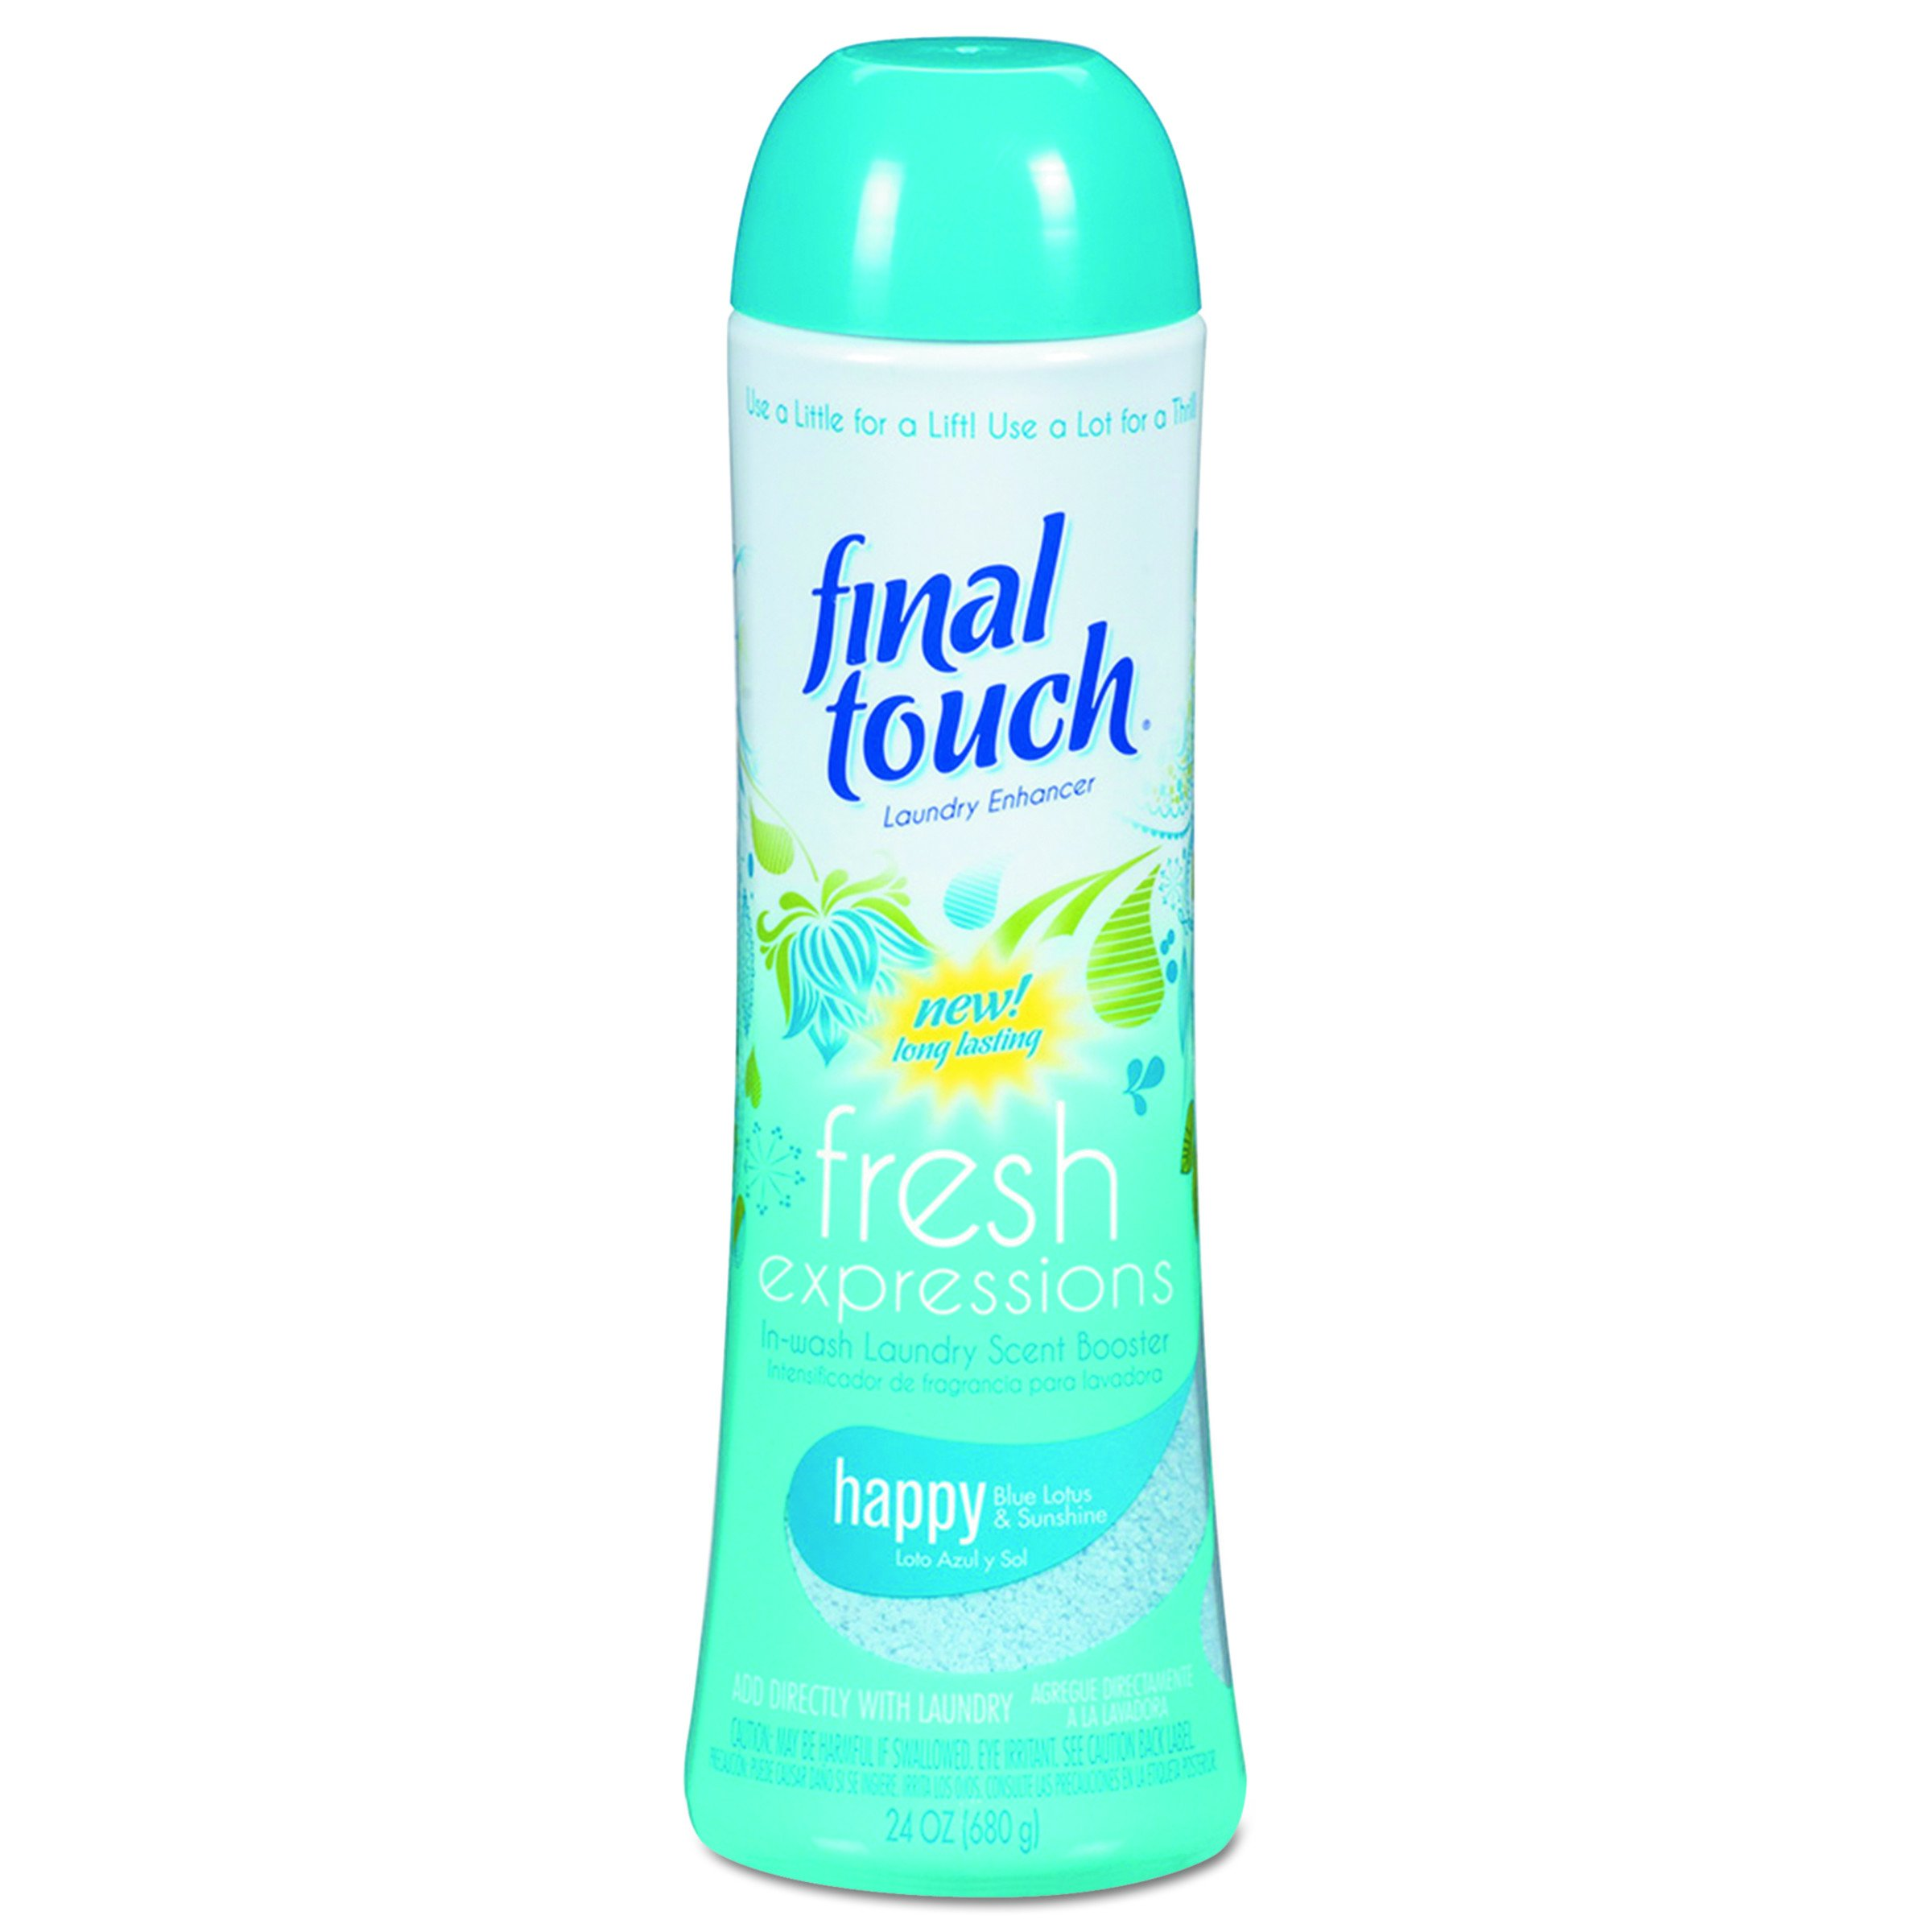 Final Touch 58221CT Fresh Expressions In-Wash Laundry Scent Booster, 24 oz, Powder, Blue Lotus (Case of 6) by Final Touch